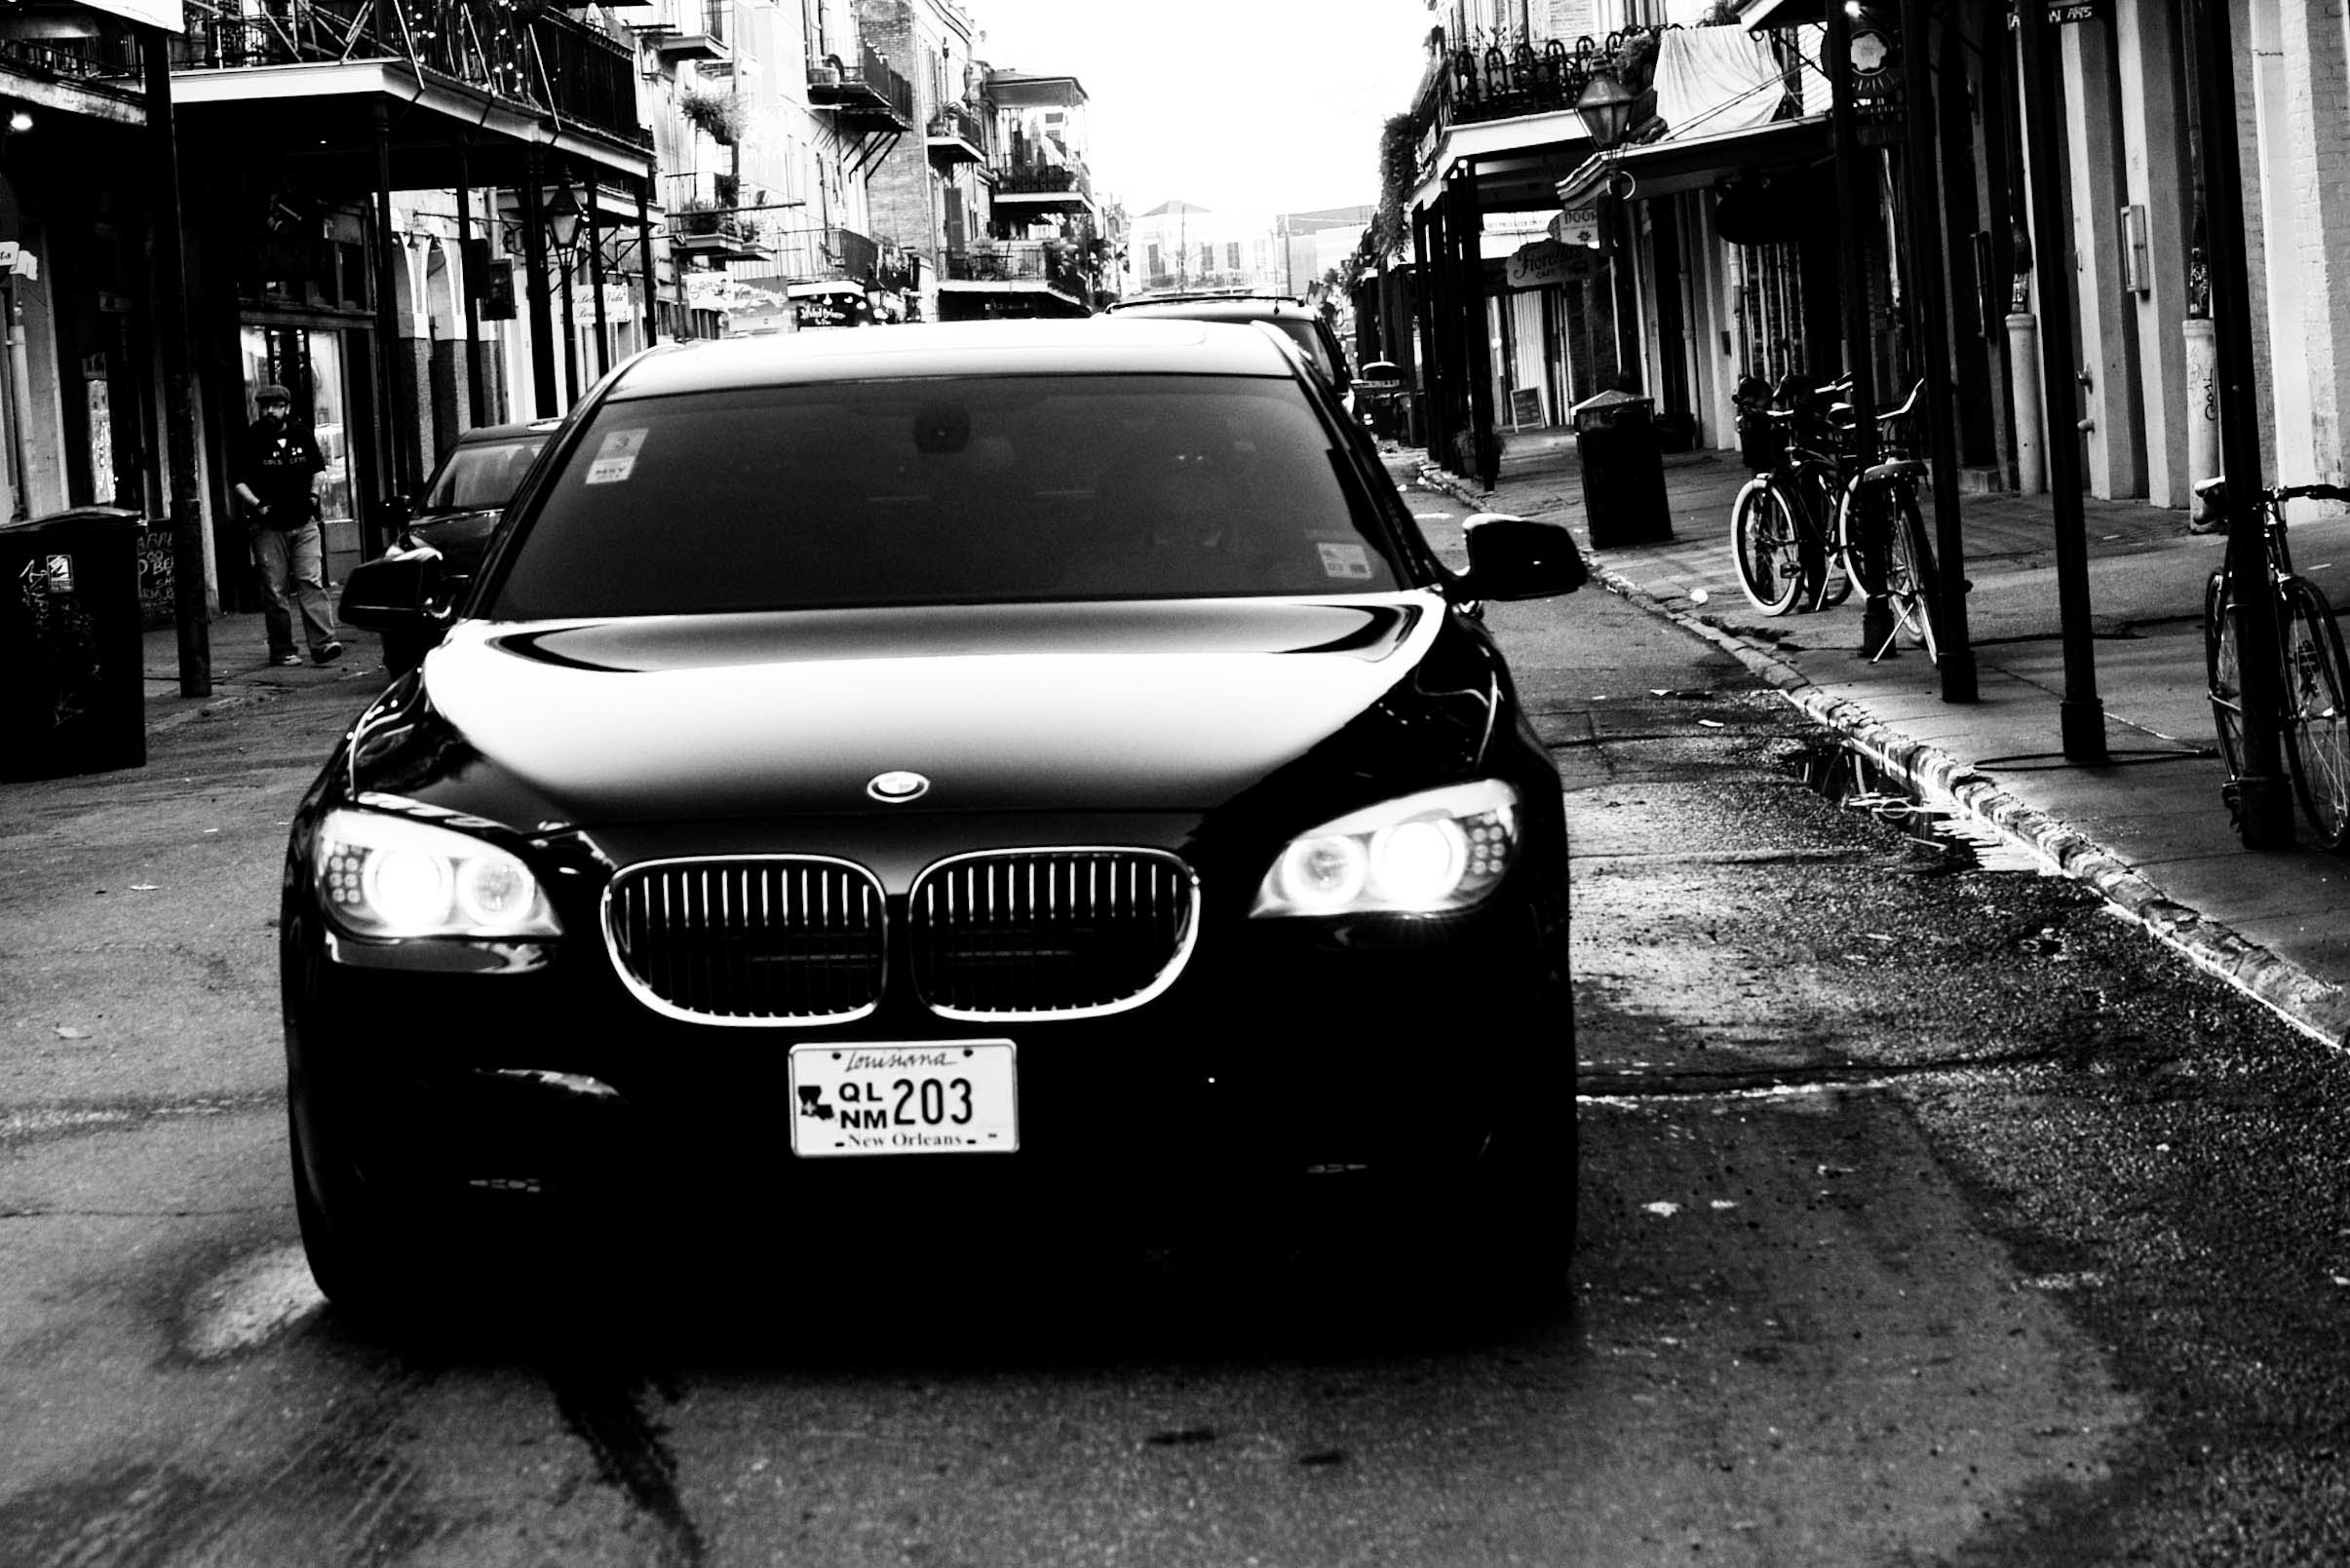 Car Service New Orleans_LCS_BMW (3 of 35).jpg